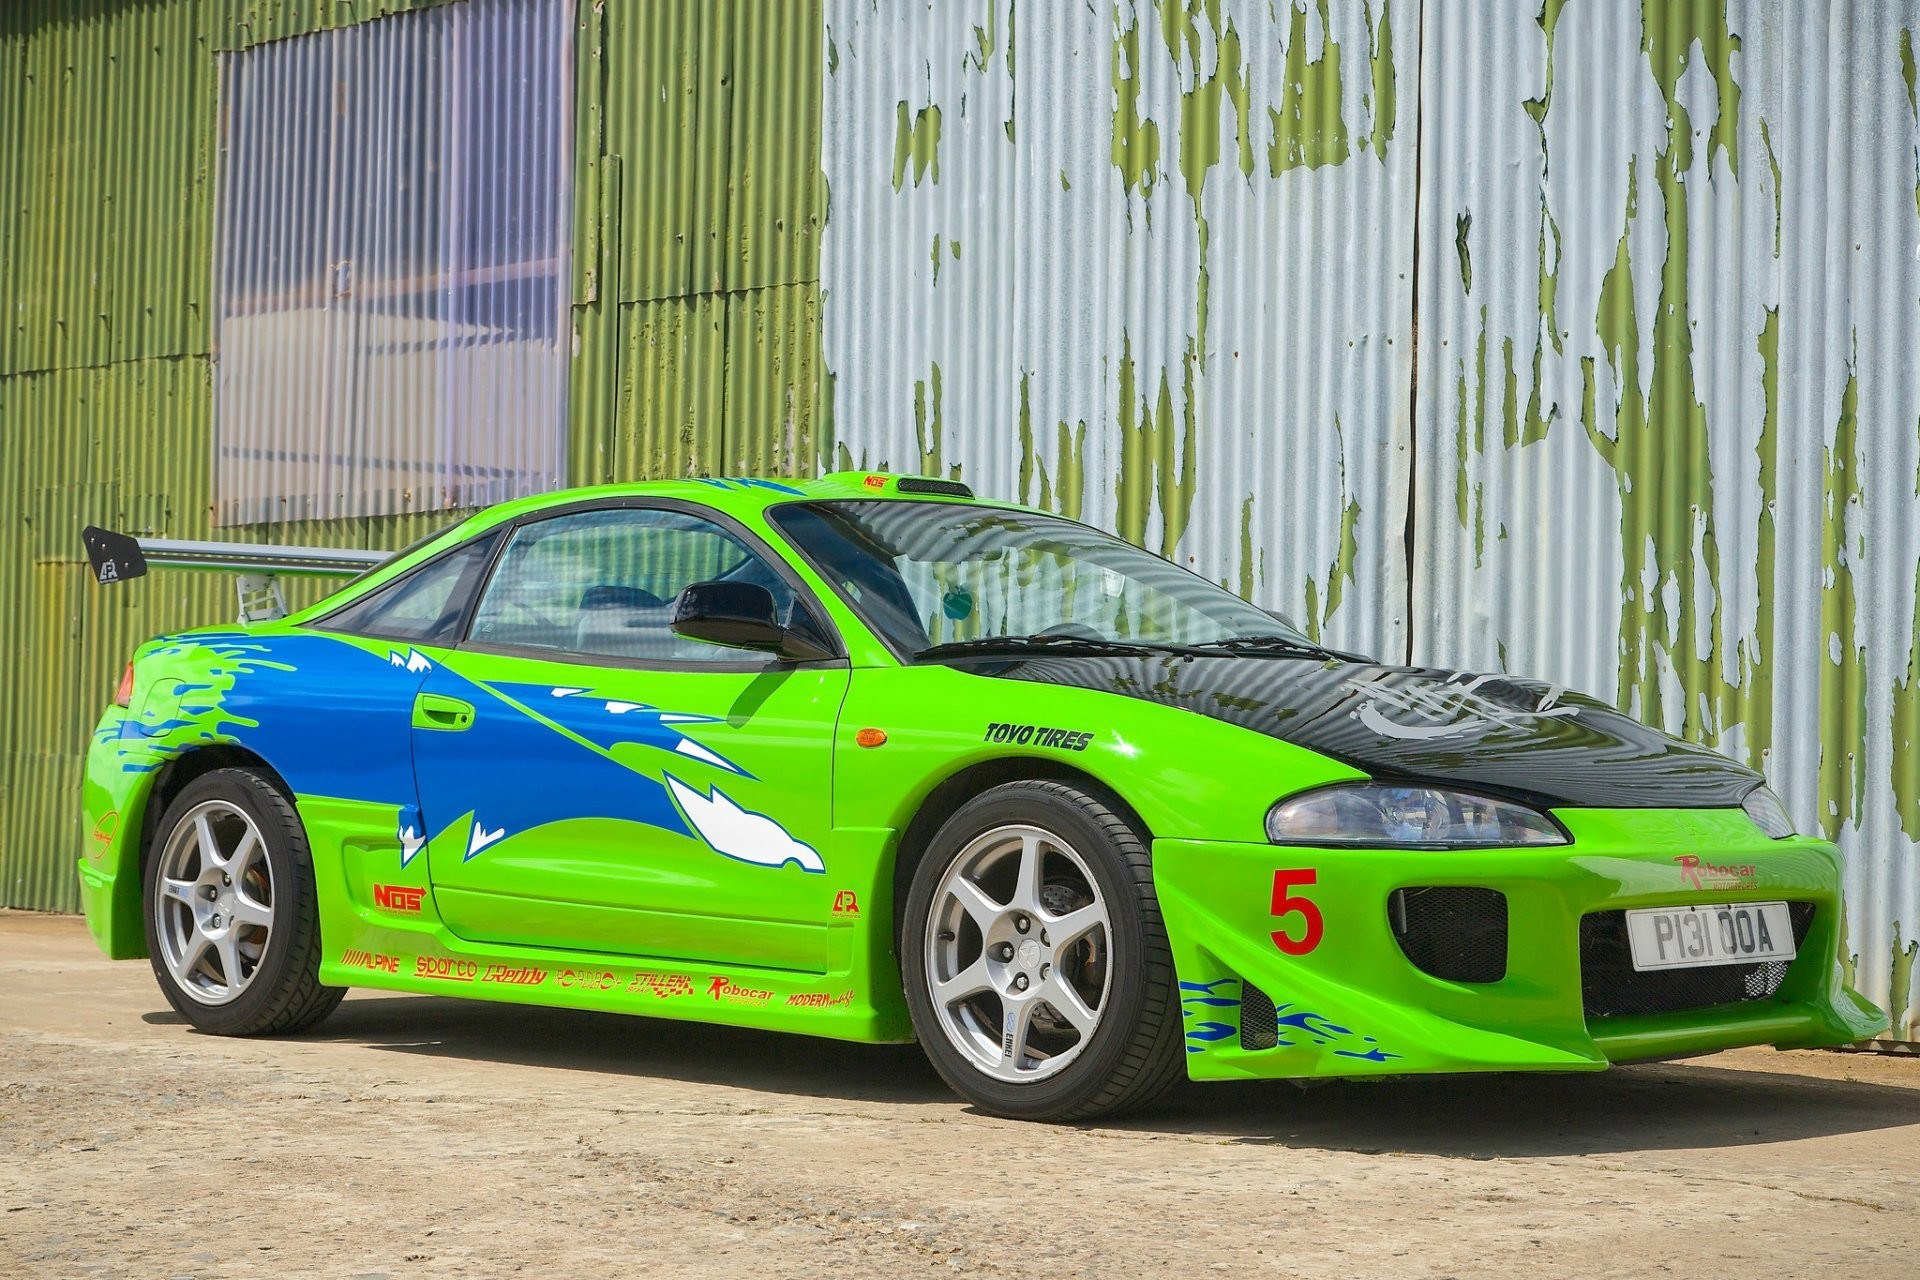 1920x1080 Mitsubishi Eclipse JDM Back Fire Abstract Car 2014